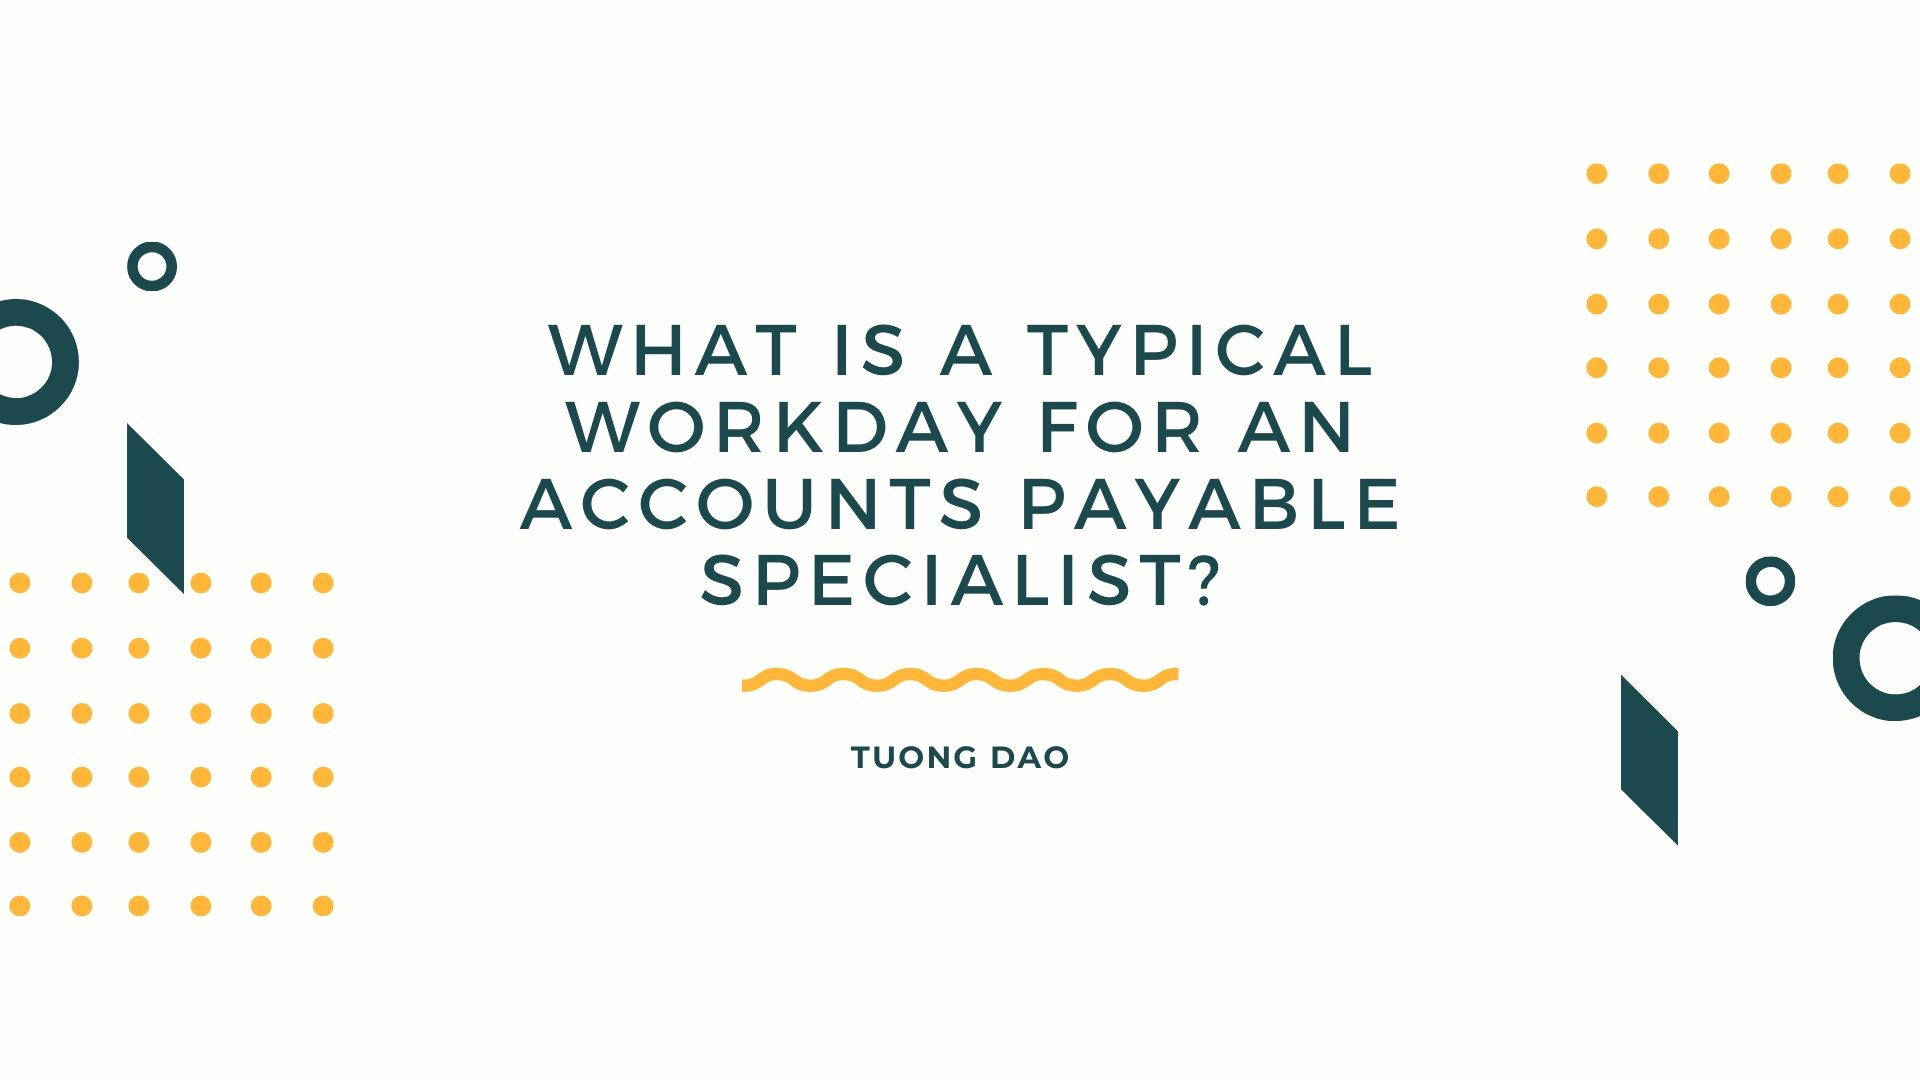 What Is a Typical Workday for an Accounts Payable Specialist?